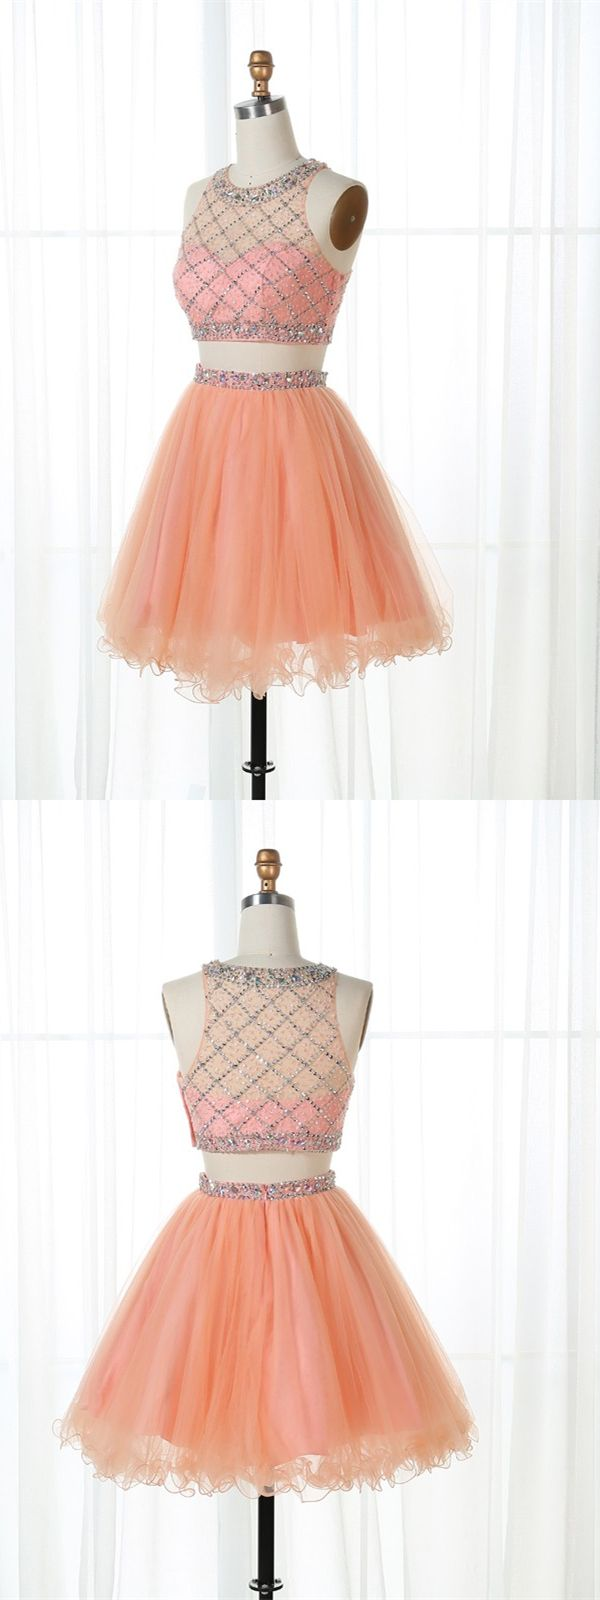 Two piece bateau short peach tulle homecoming dress with beading